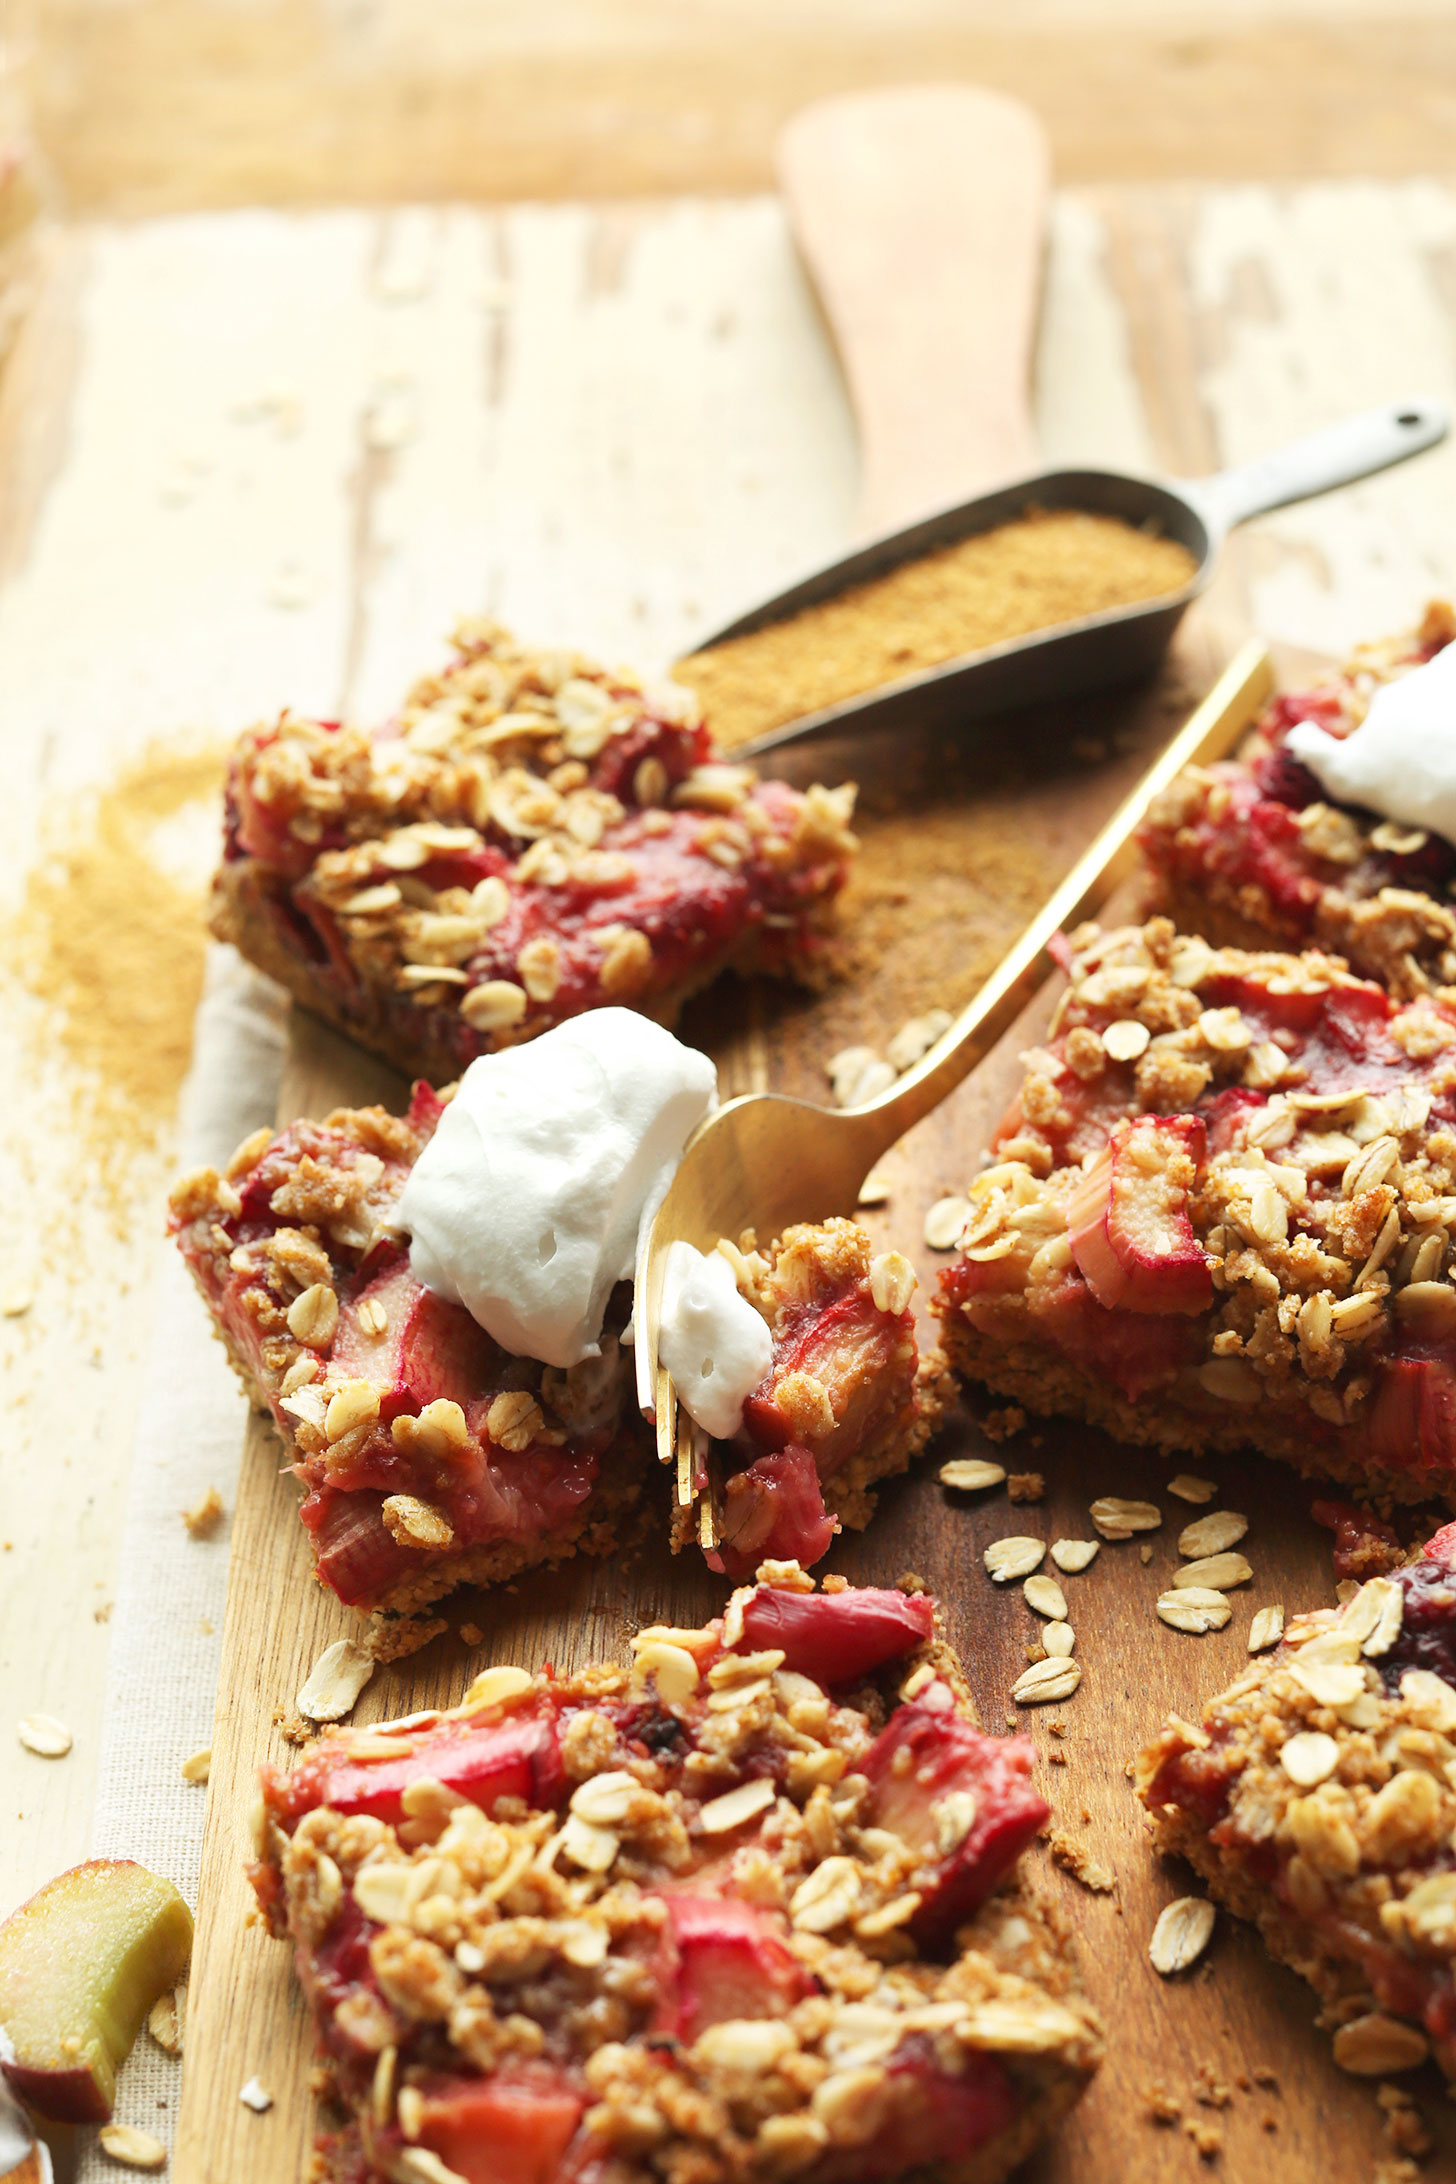 Slicing into a Strawberry Crumble Rhubarb Bar for a delicious gluten-free vegan dessert